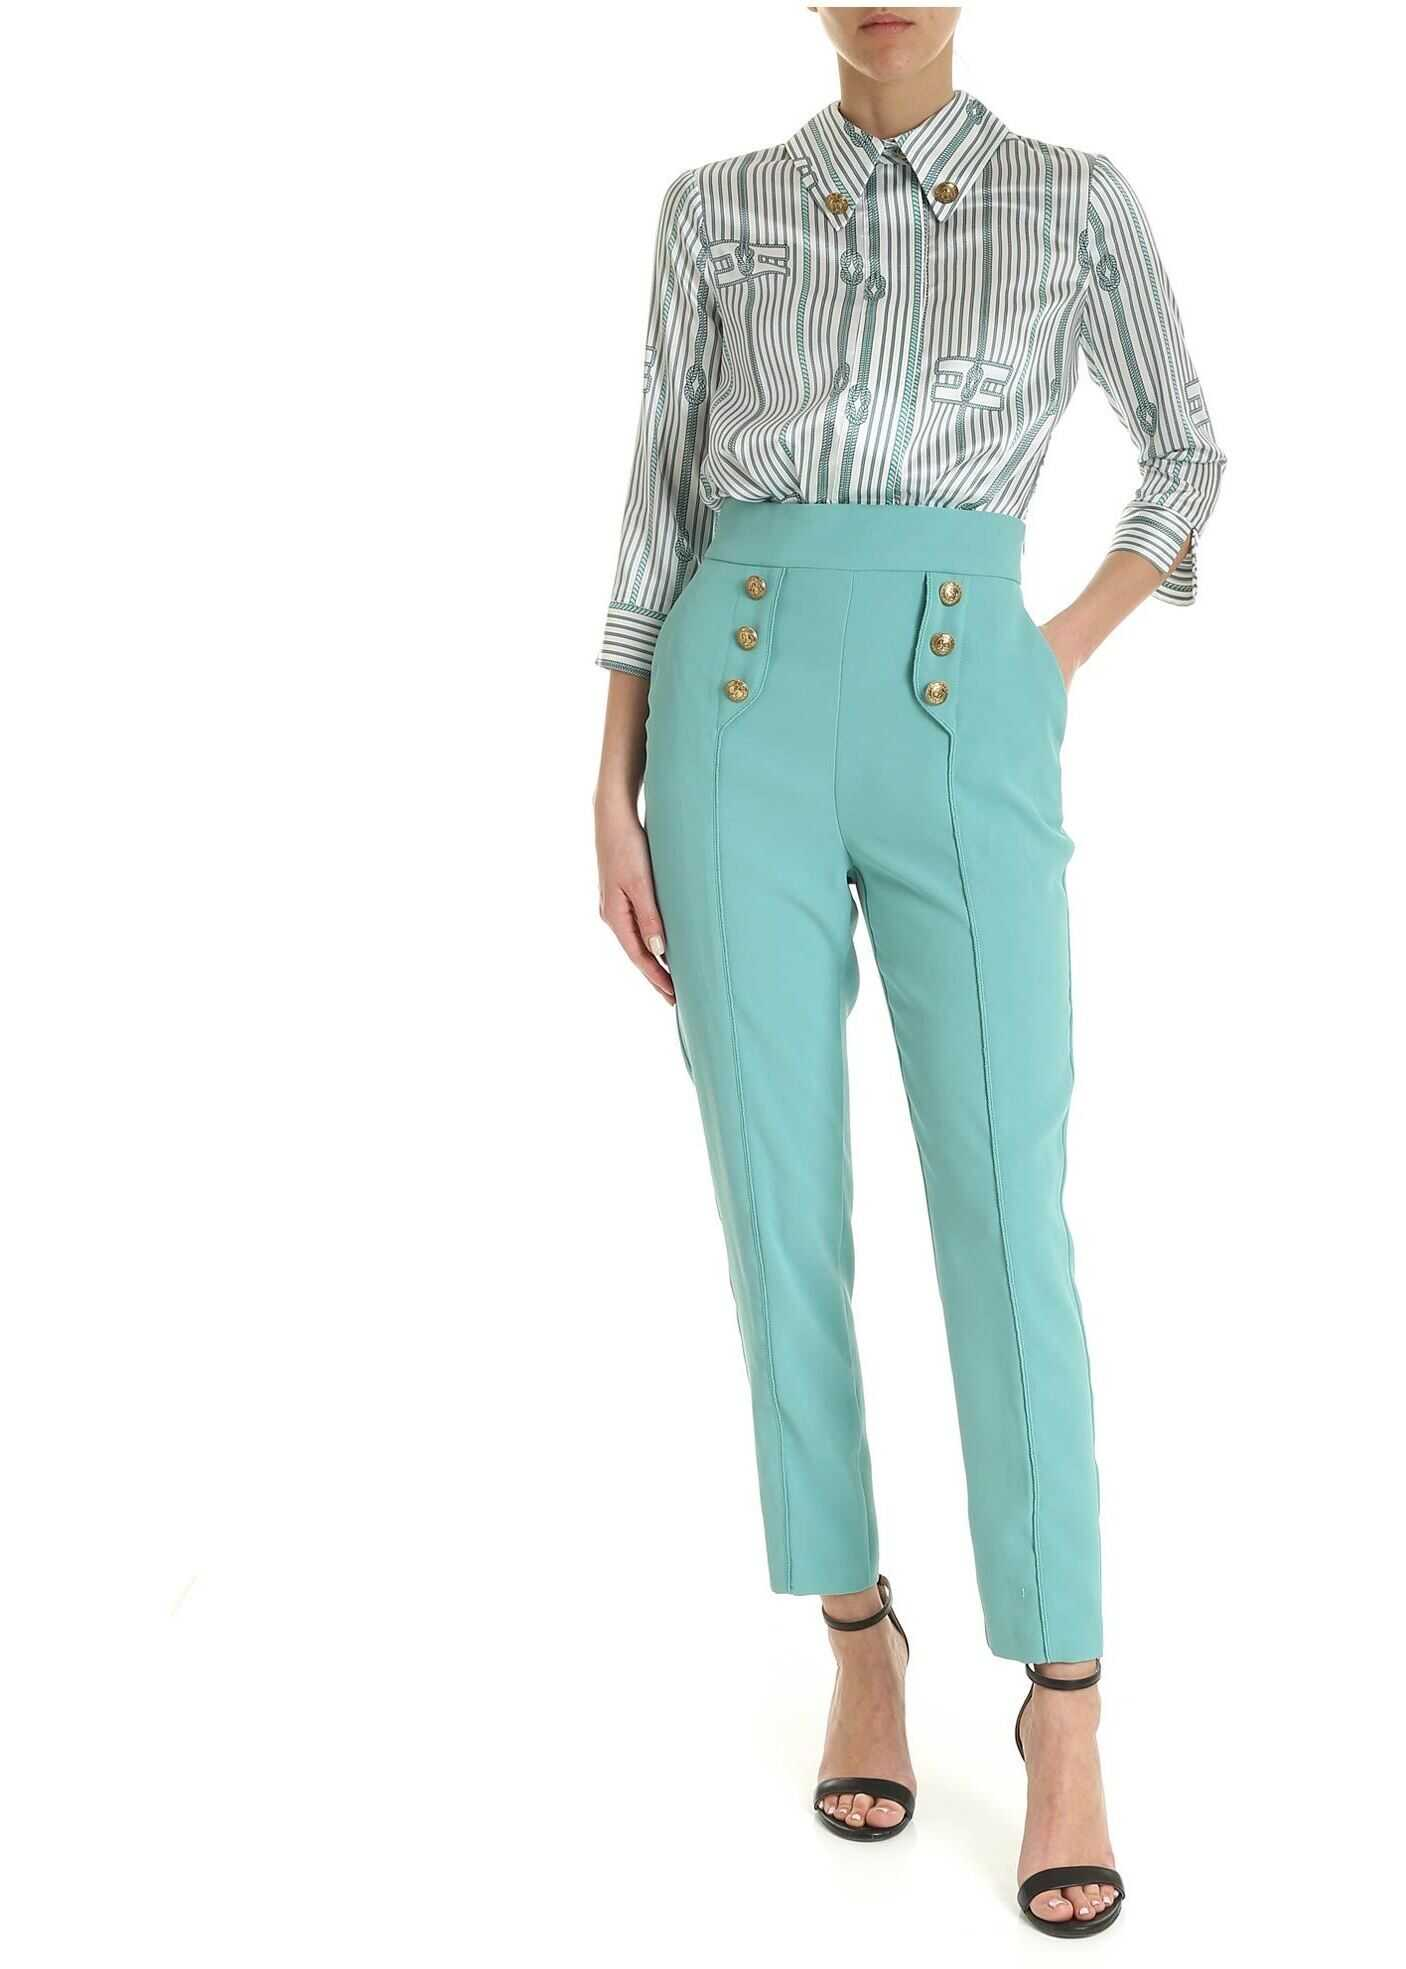 Satin And Crepe Jumpsuit In White And Light Blue thumbnail